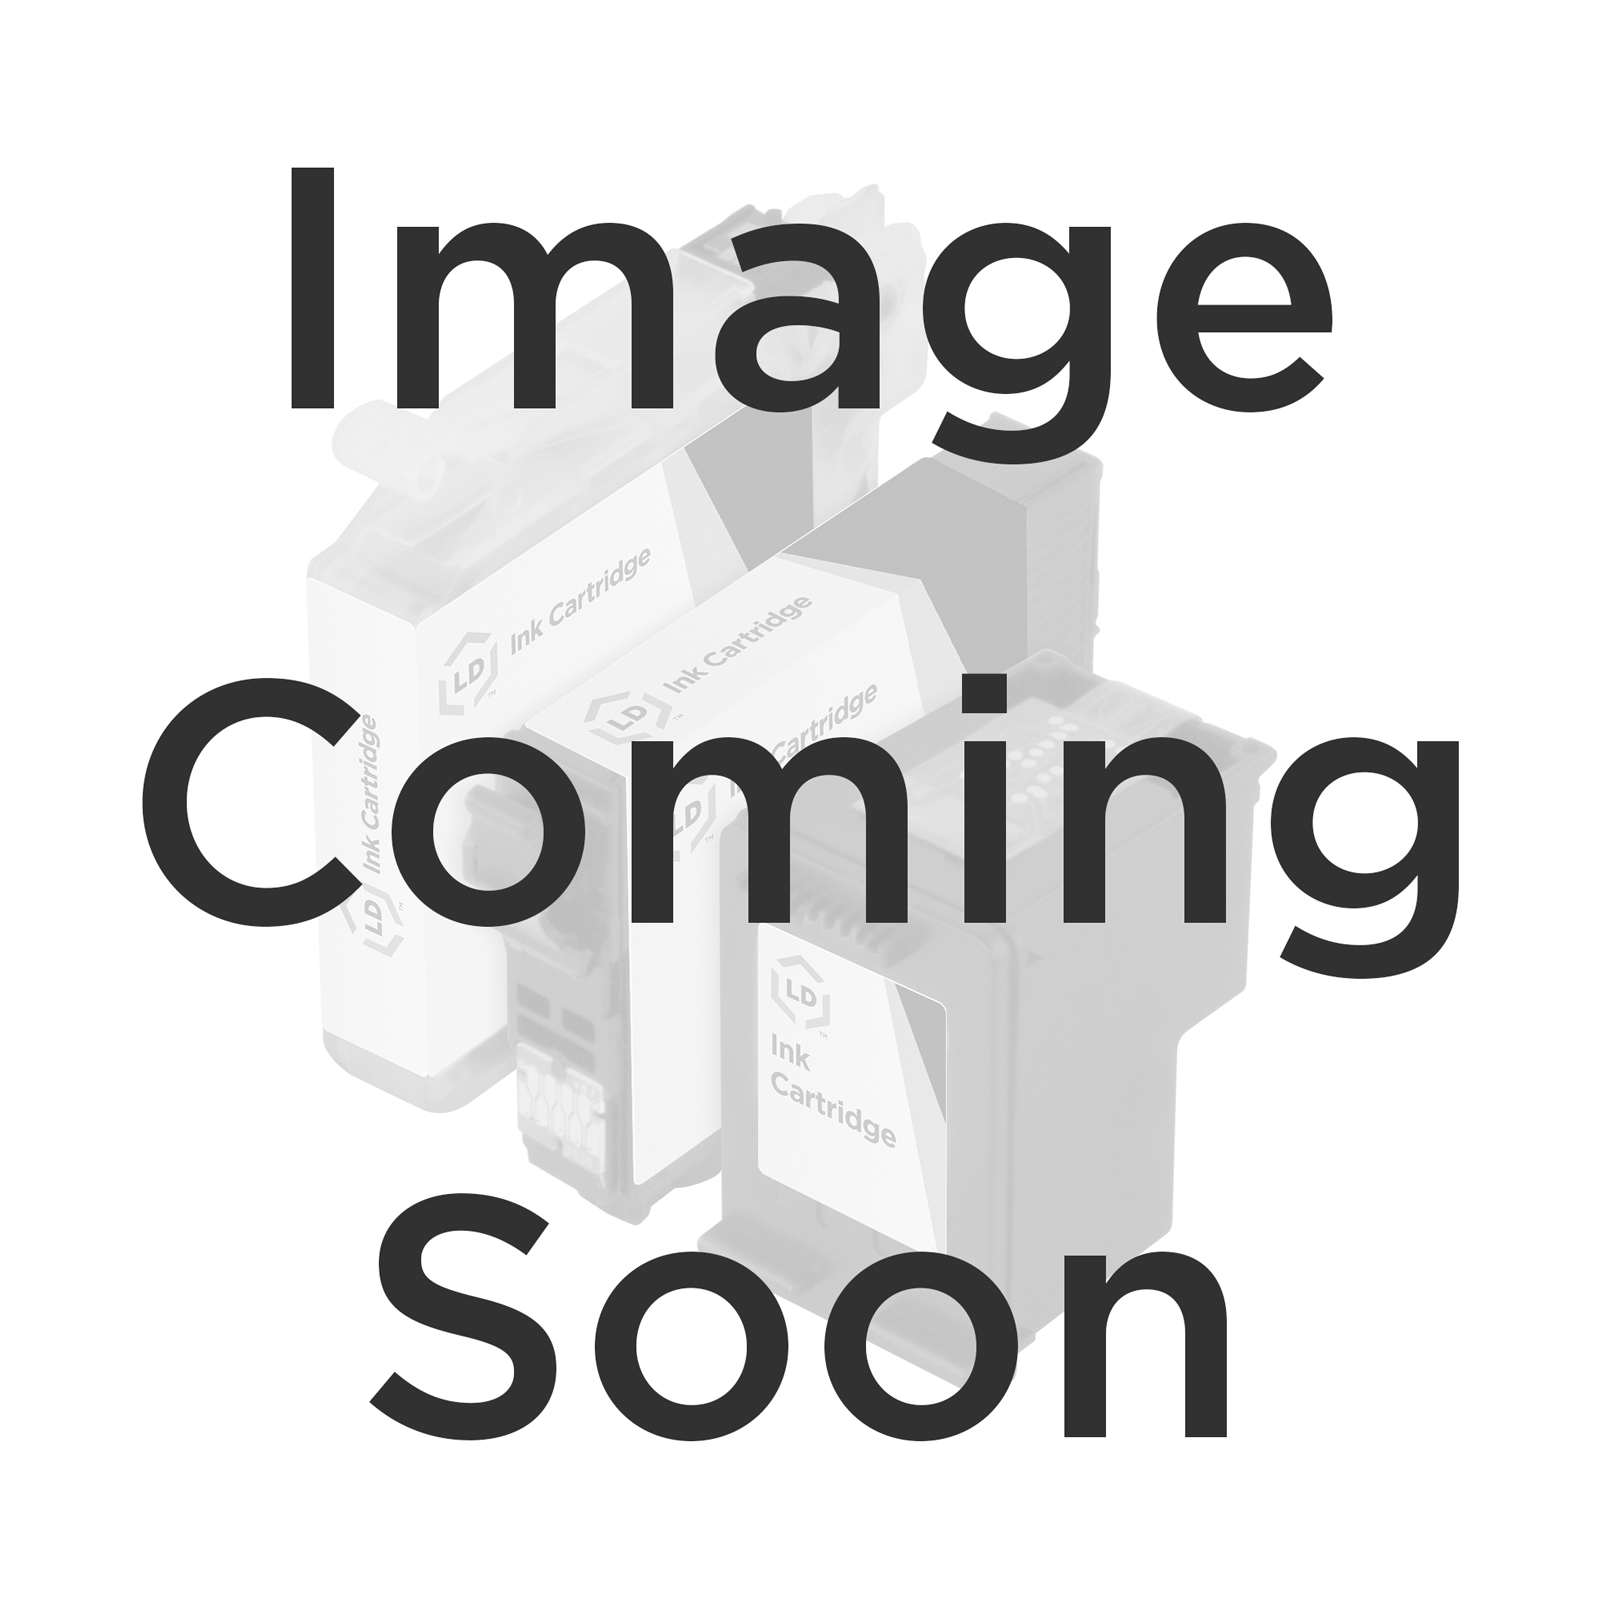 Shell Daily Math Stretches: Building Conceptual Understanding: Levels 6-8 Education Printed Book for Mathematics by Laney Sammons, Pamela Dase - English